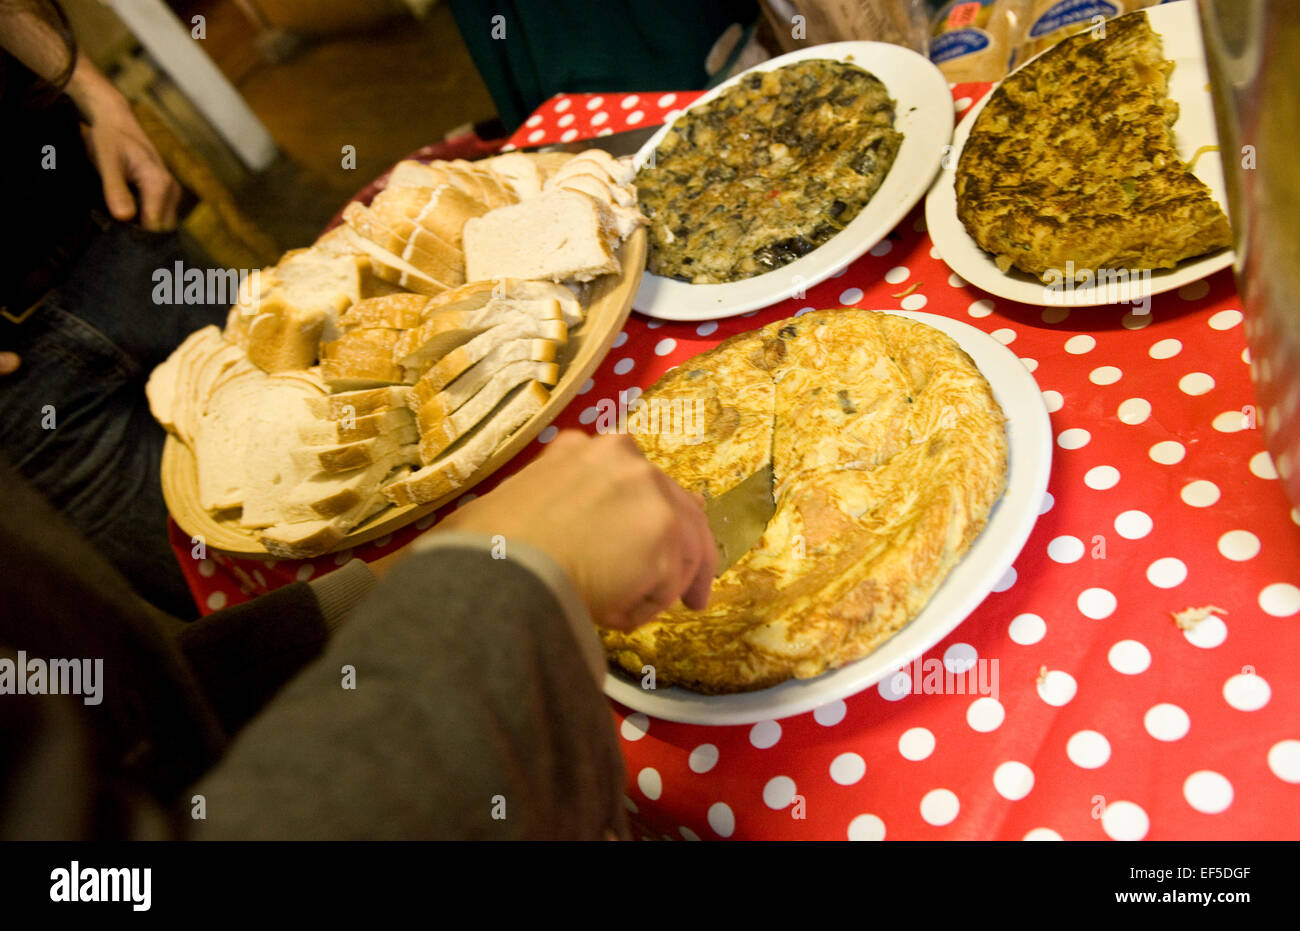 Passing Clouds in Dalston launches a new free cooking and dinner event on Sunday. The idea is people bring some - Stock Image